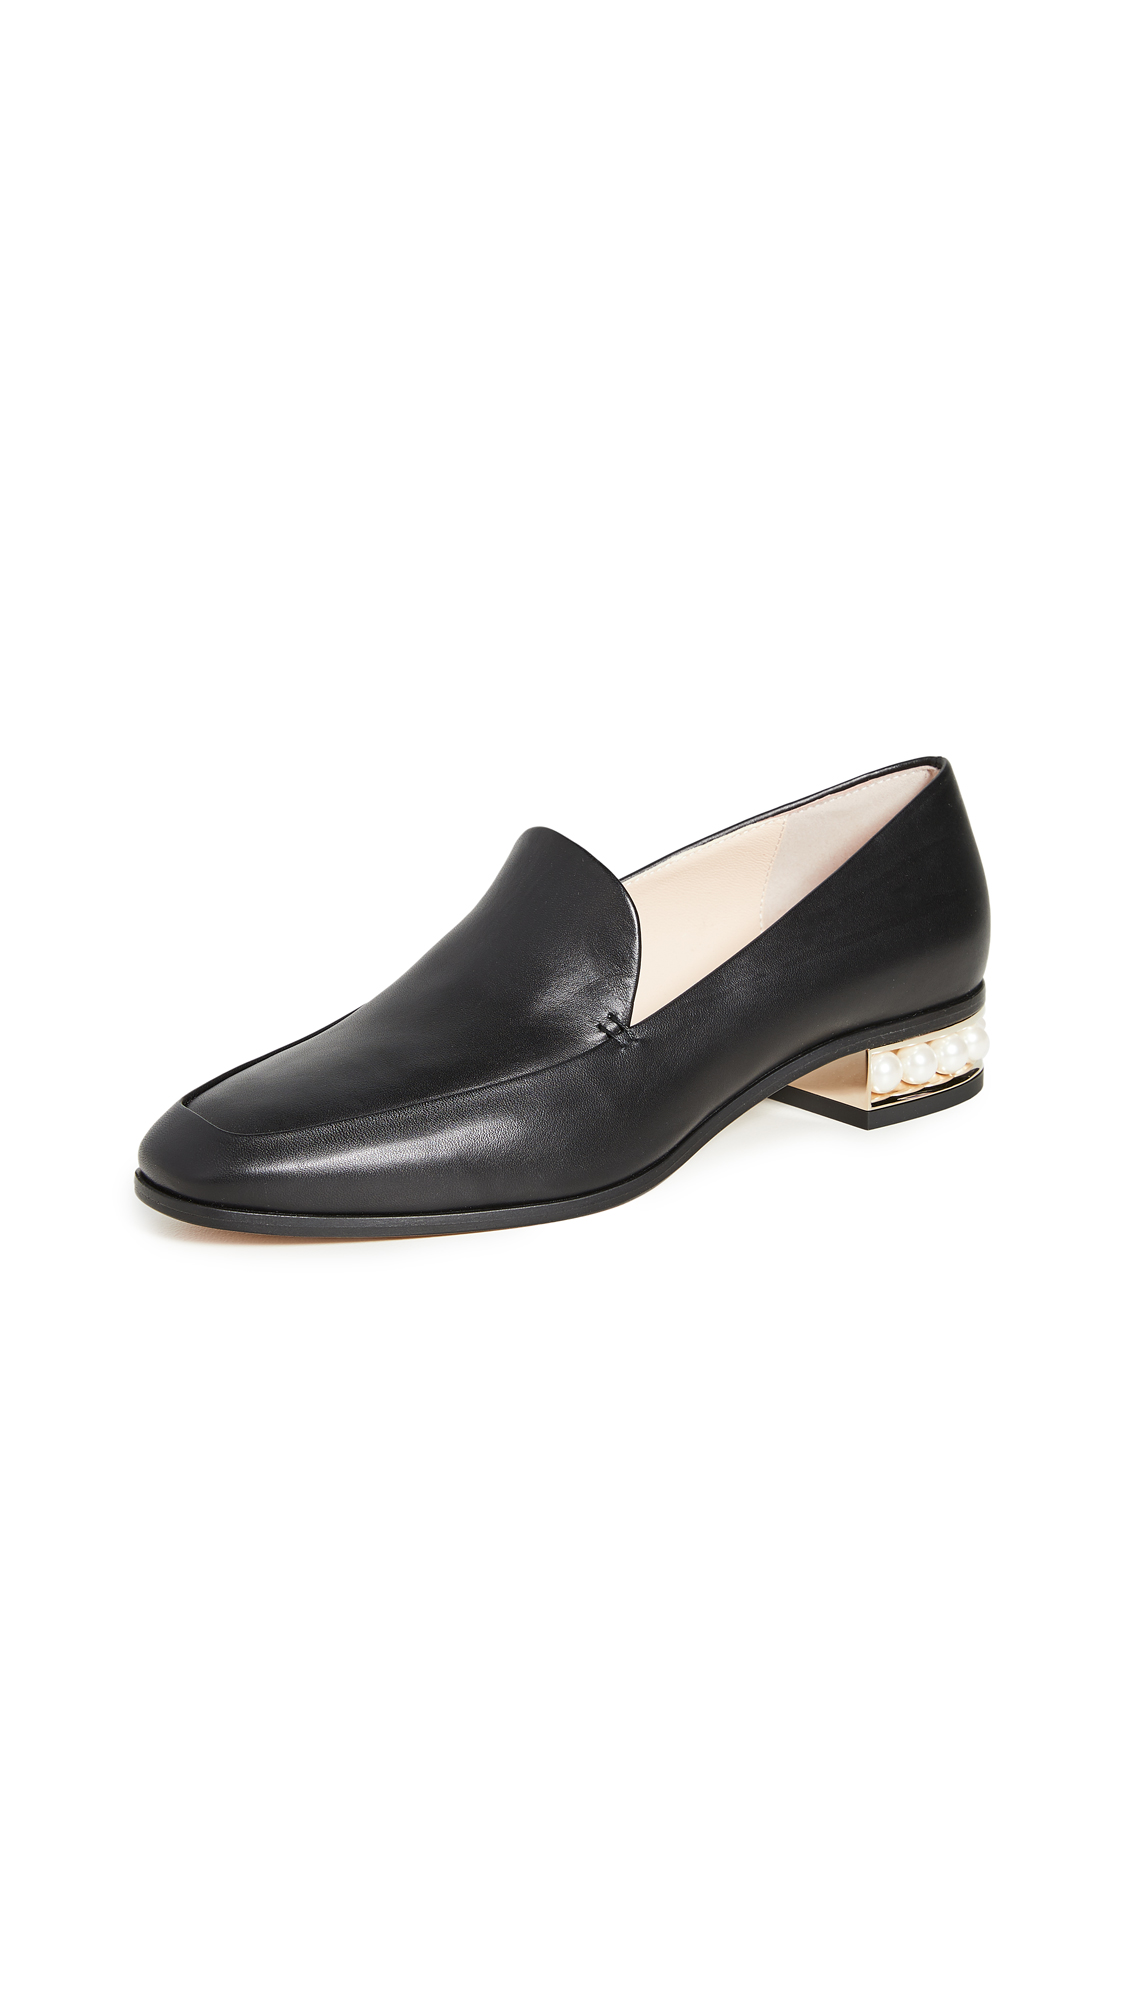 Nicholas Kirkwood Casati Moccasin Loafers - 40% Off Sale